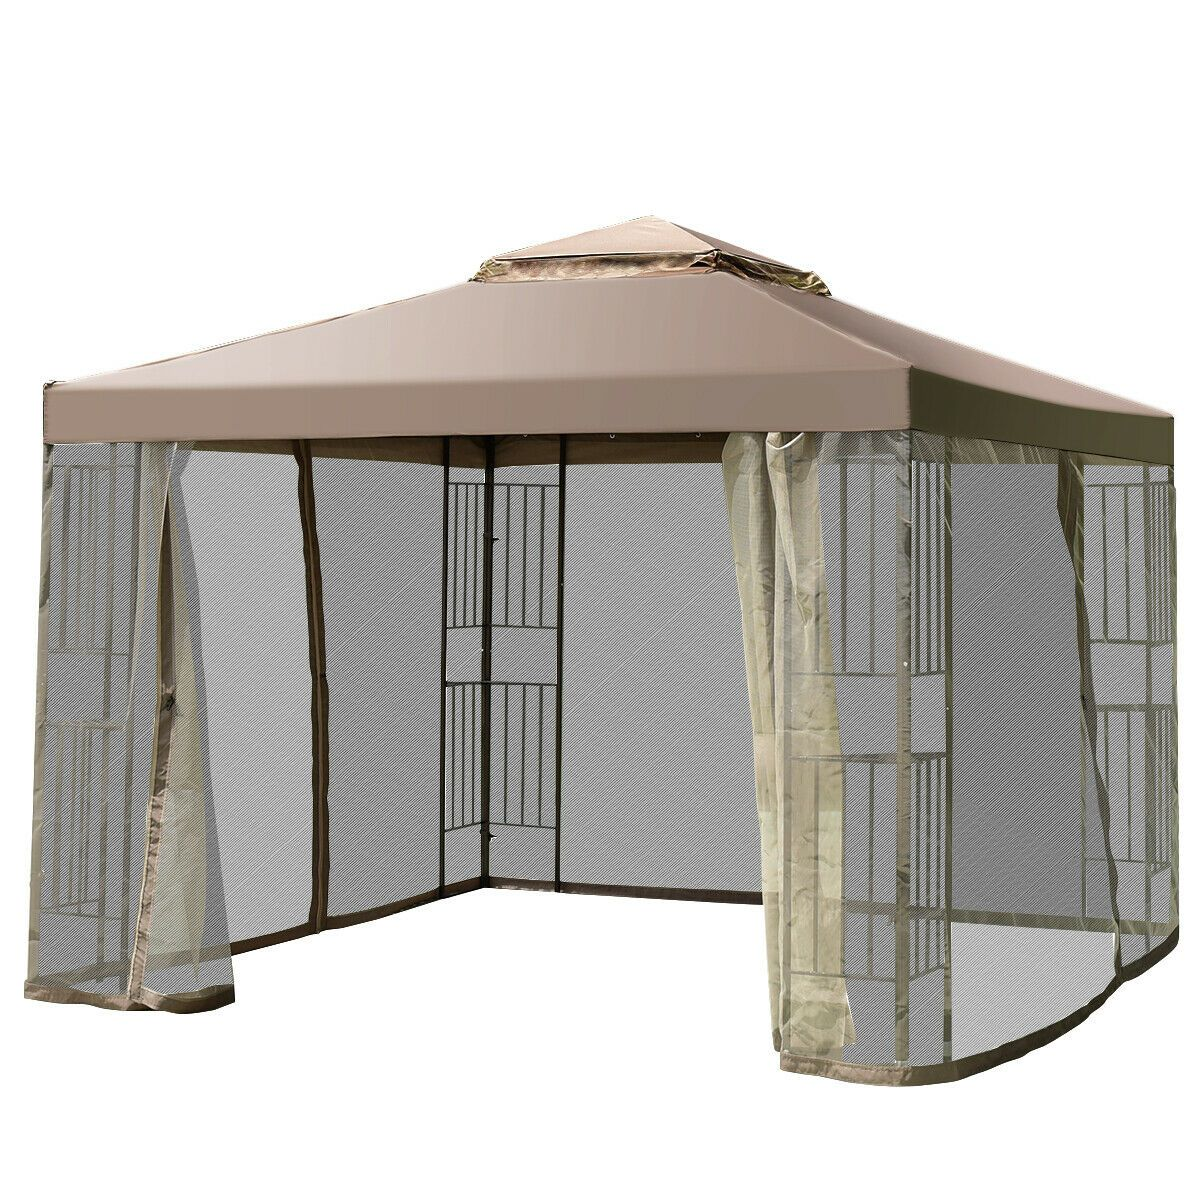 2 Tier 10x10 Gazebo Canopy Shelter Awning Tent Outdoor W Netting Screw Free 158 95 Gazebo Ideas Of Gazebo Gazebo Canopy Tent Gazebo Canopy Tent Awning